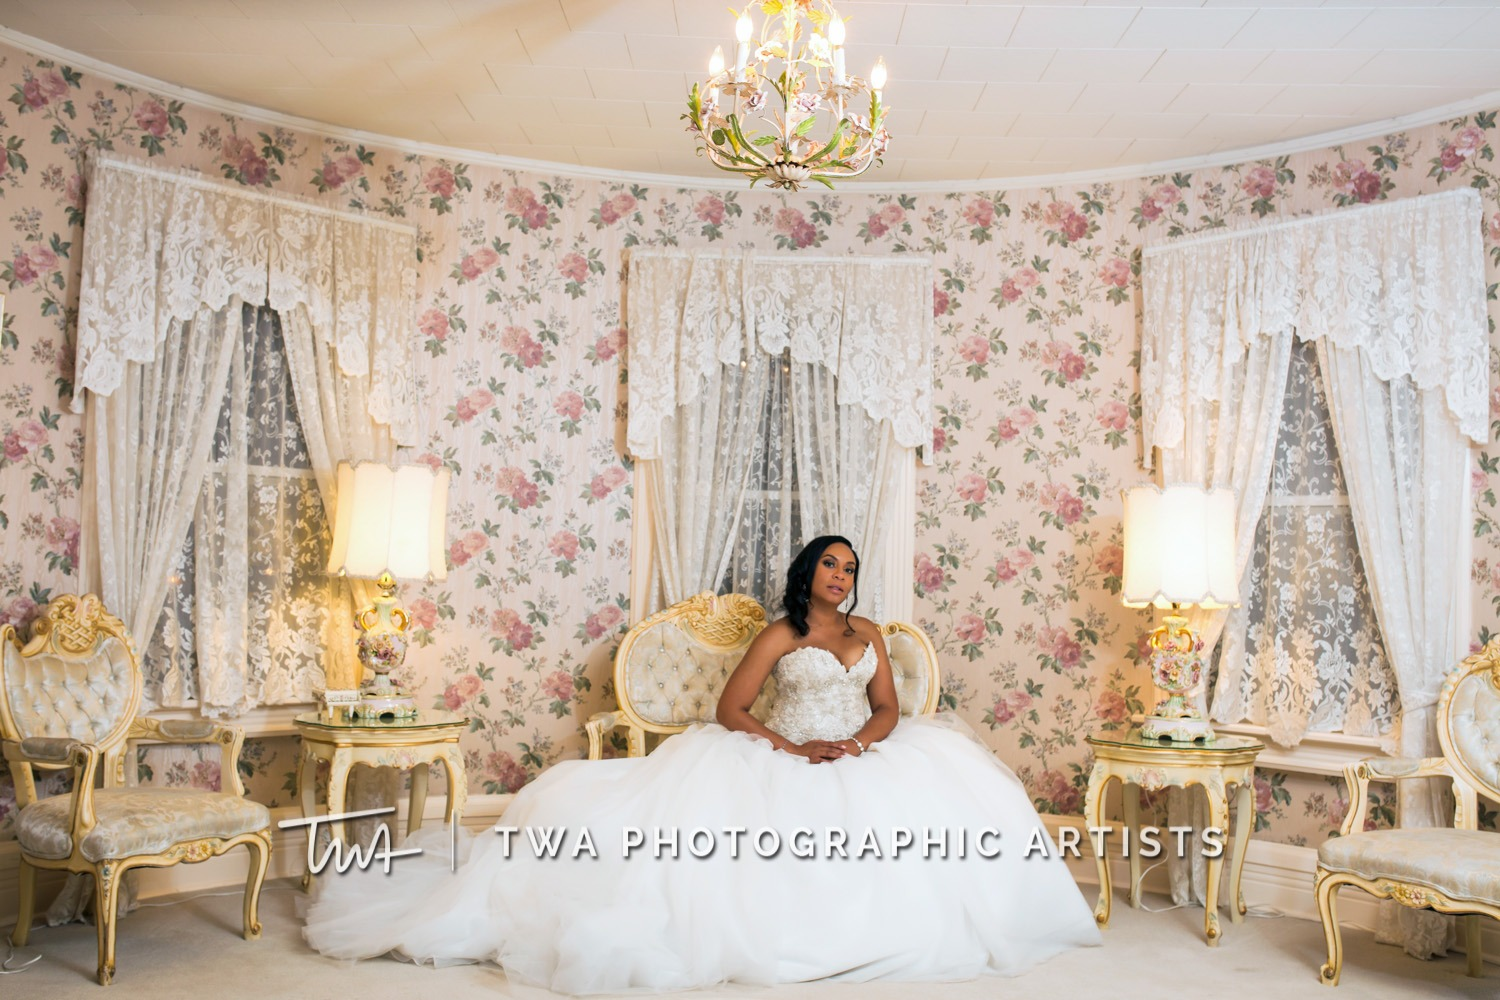 Chicago-Wedding-Photographer-TWA-Photographic-Artists-Haley-Mansion_Graves_Moffett_JM-040_0533